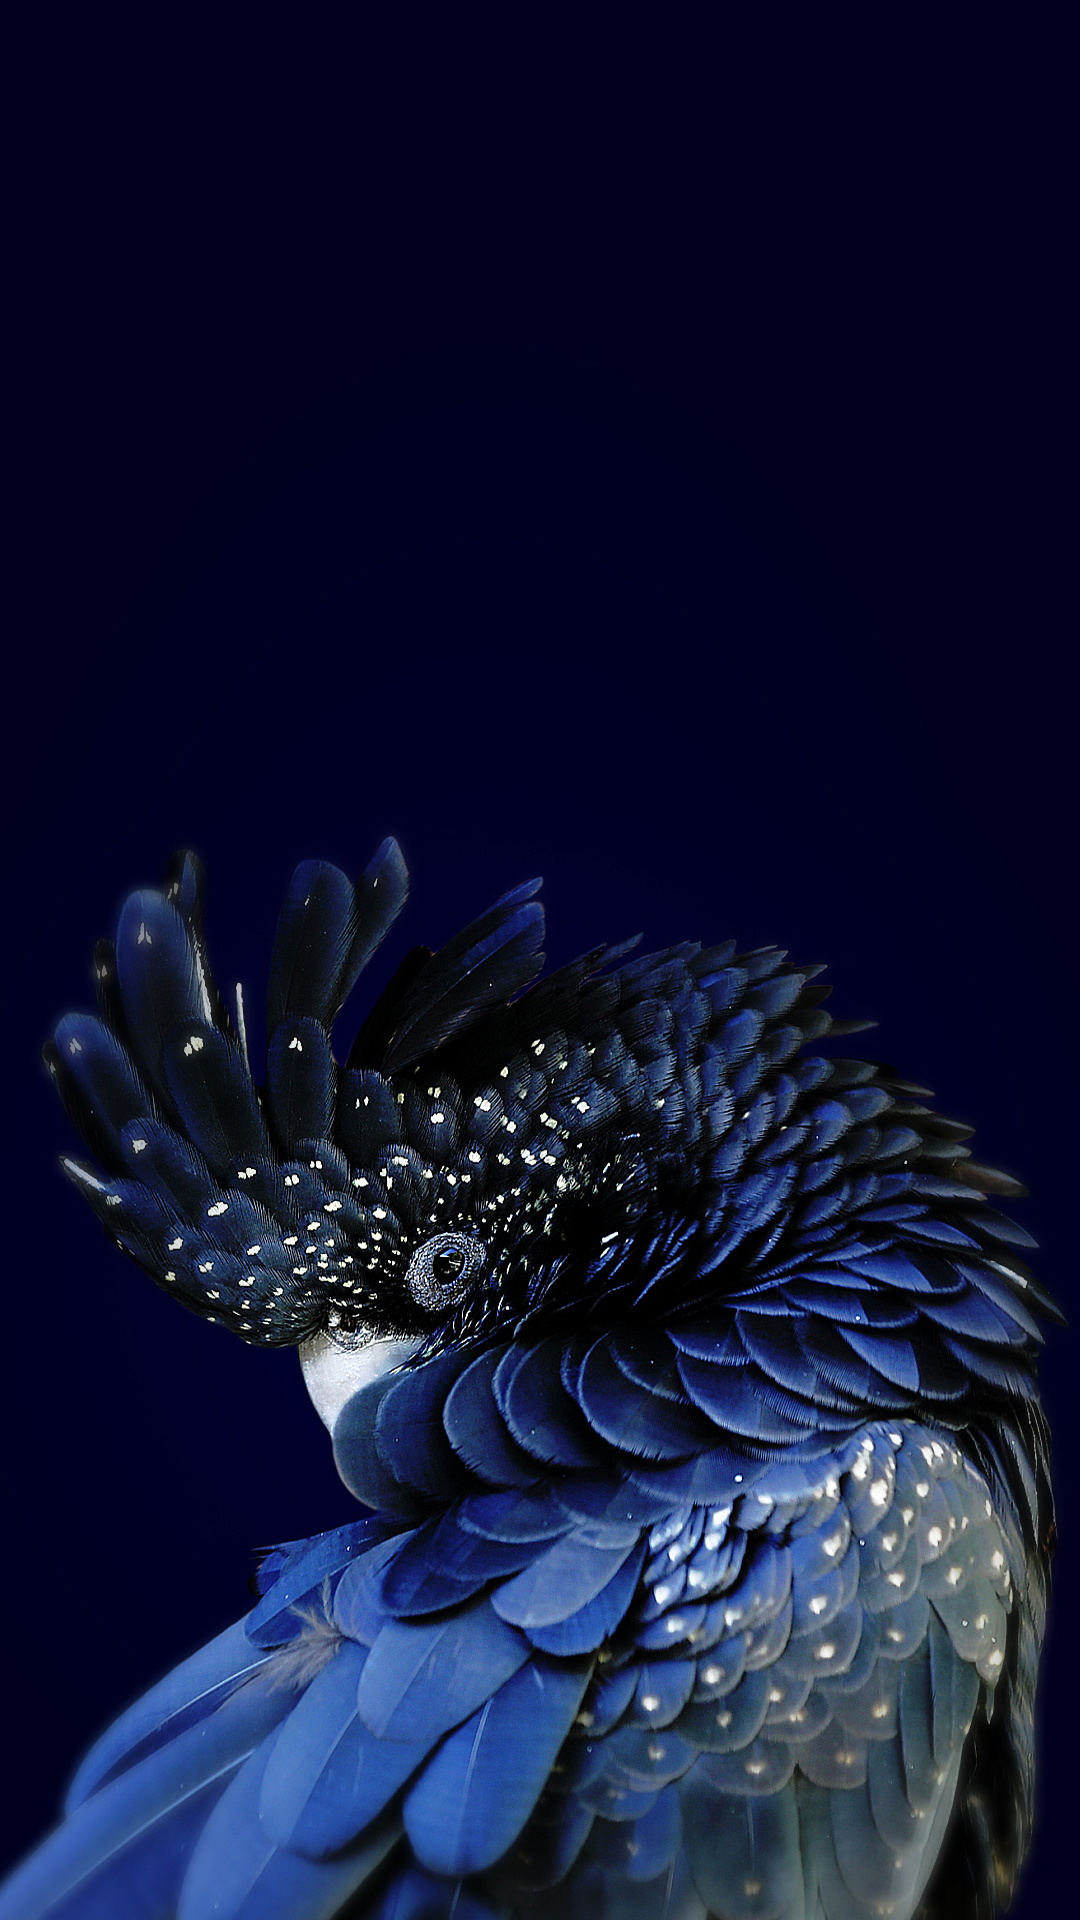 iPhone wallpaper parrot blue 3Wallpapers : notre sélection de fonds d'écran du 01/03/2018